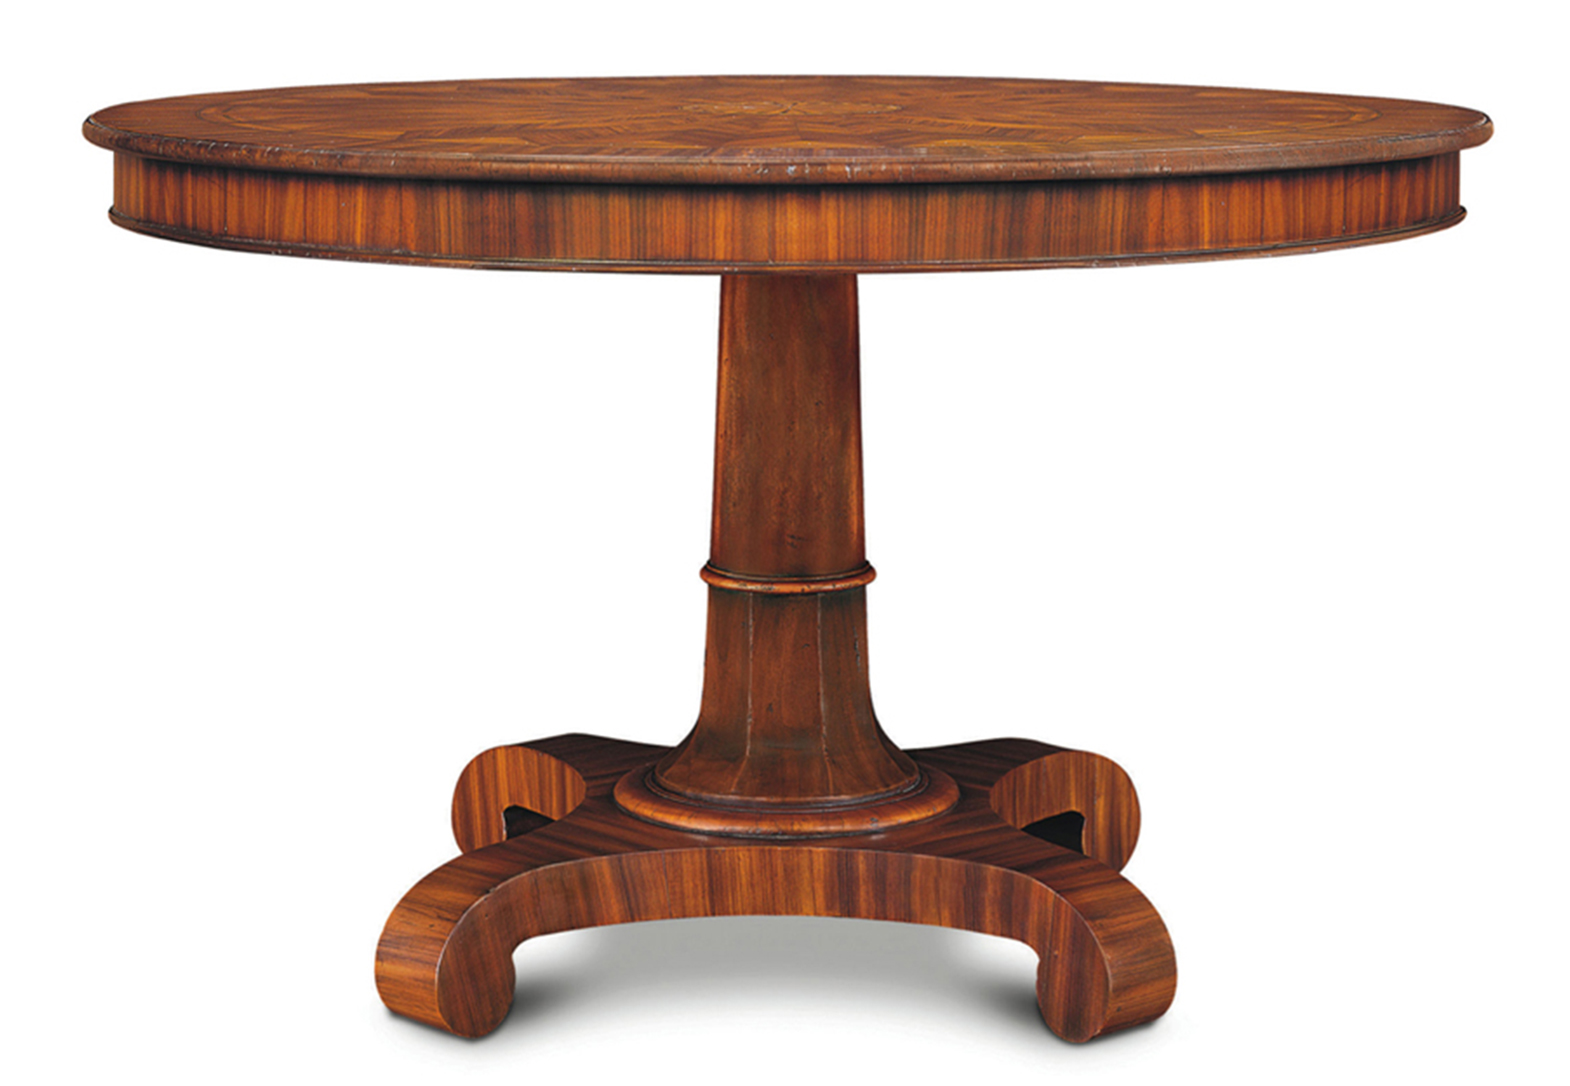 MEXICAN NEOCLASSIC TABLE